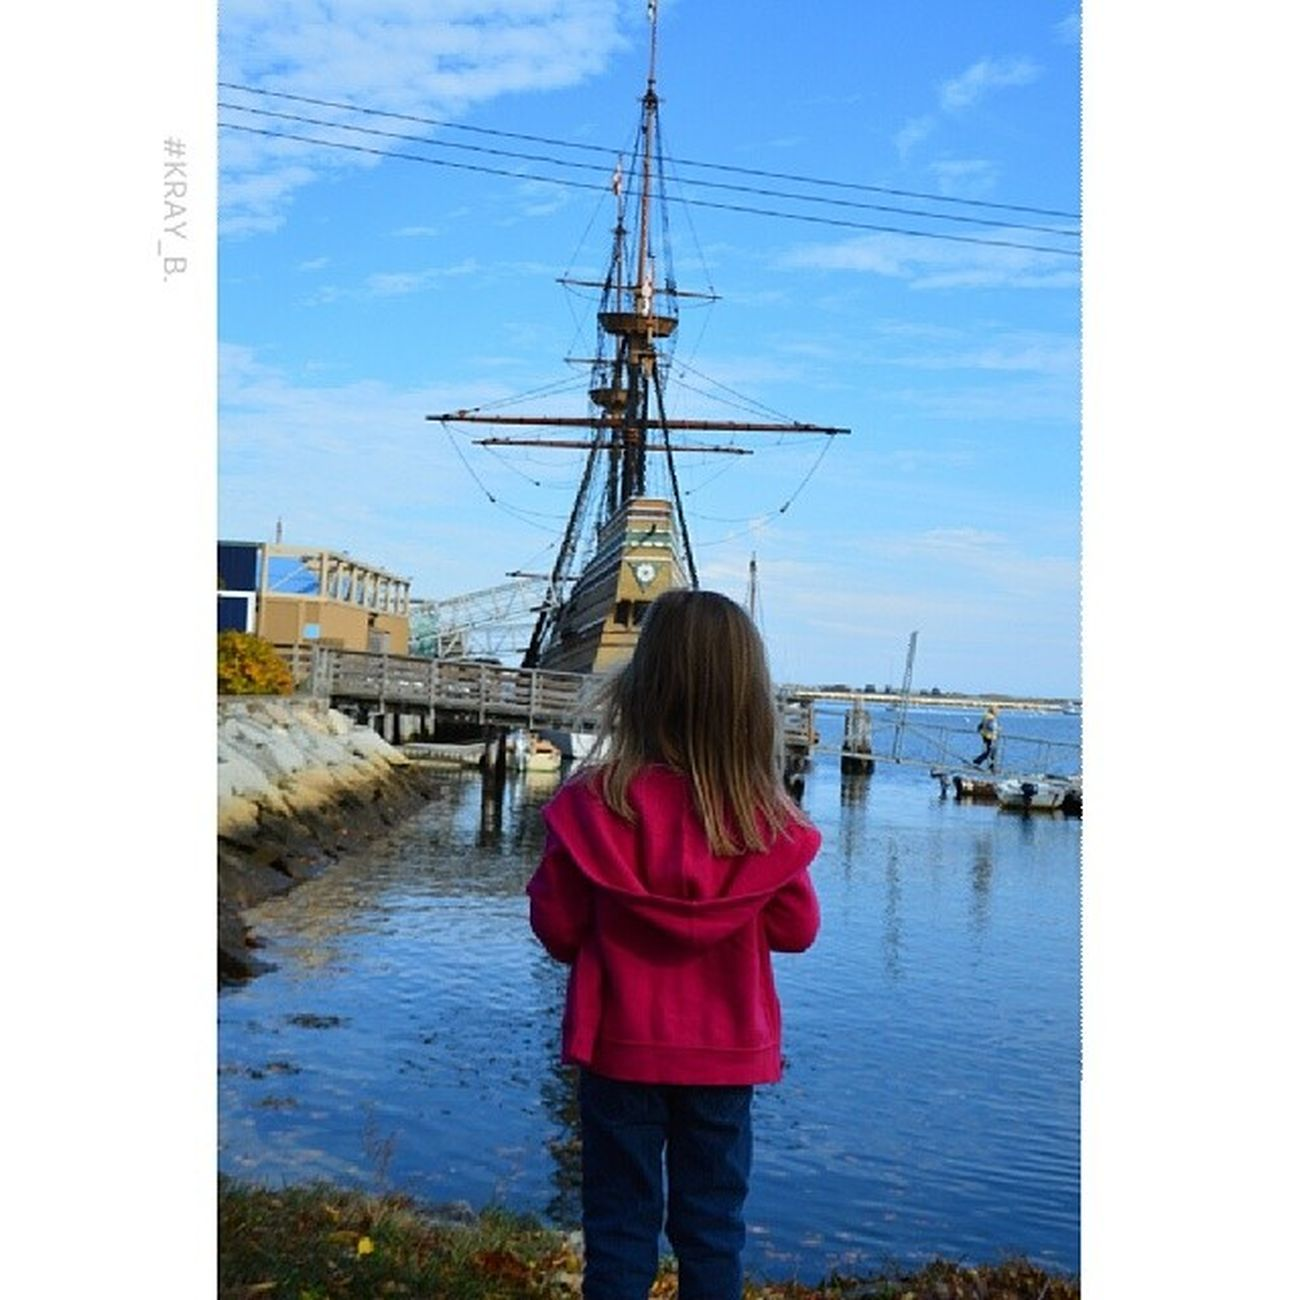 SamSam and the mayflower 2 Plymouth MA Samsamandi Samfiltered Daughter Daytrip littlegirlbigboat instafititpro insta_cute instapic inspiration instacool instagood instaphoto insta_pic insta_pretty instacute cutepics cutlittlegirl mylittlegirl checkoutmygallery followme nikond3200 beautifulday gorgeousshot prettylittlegirl prettypic